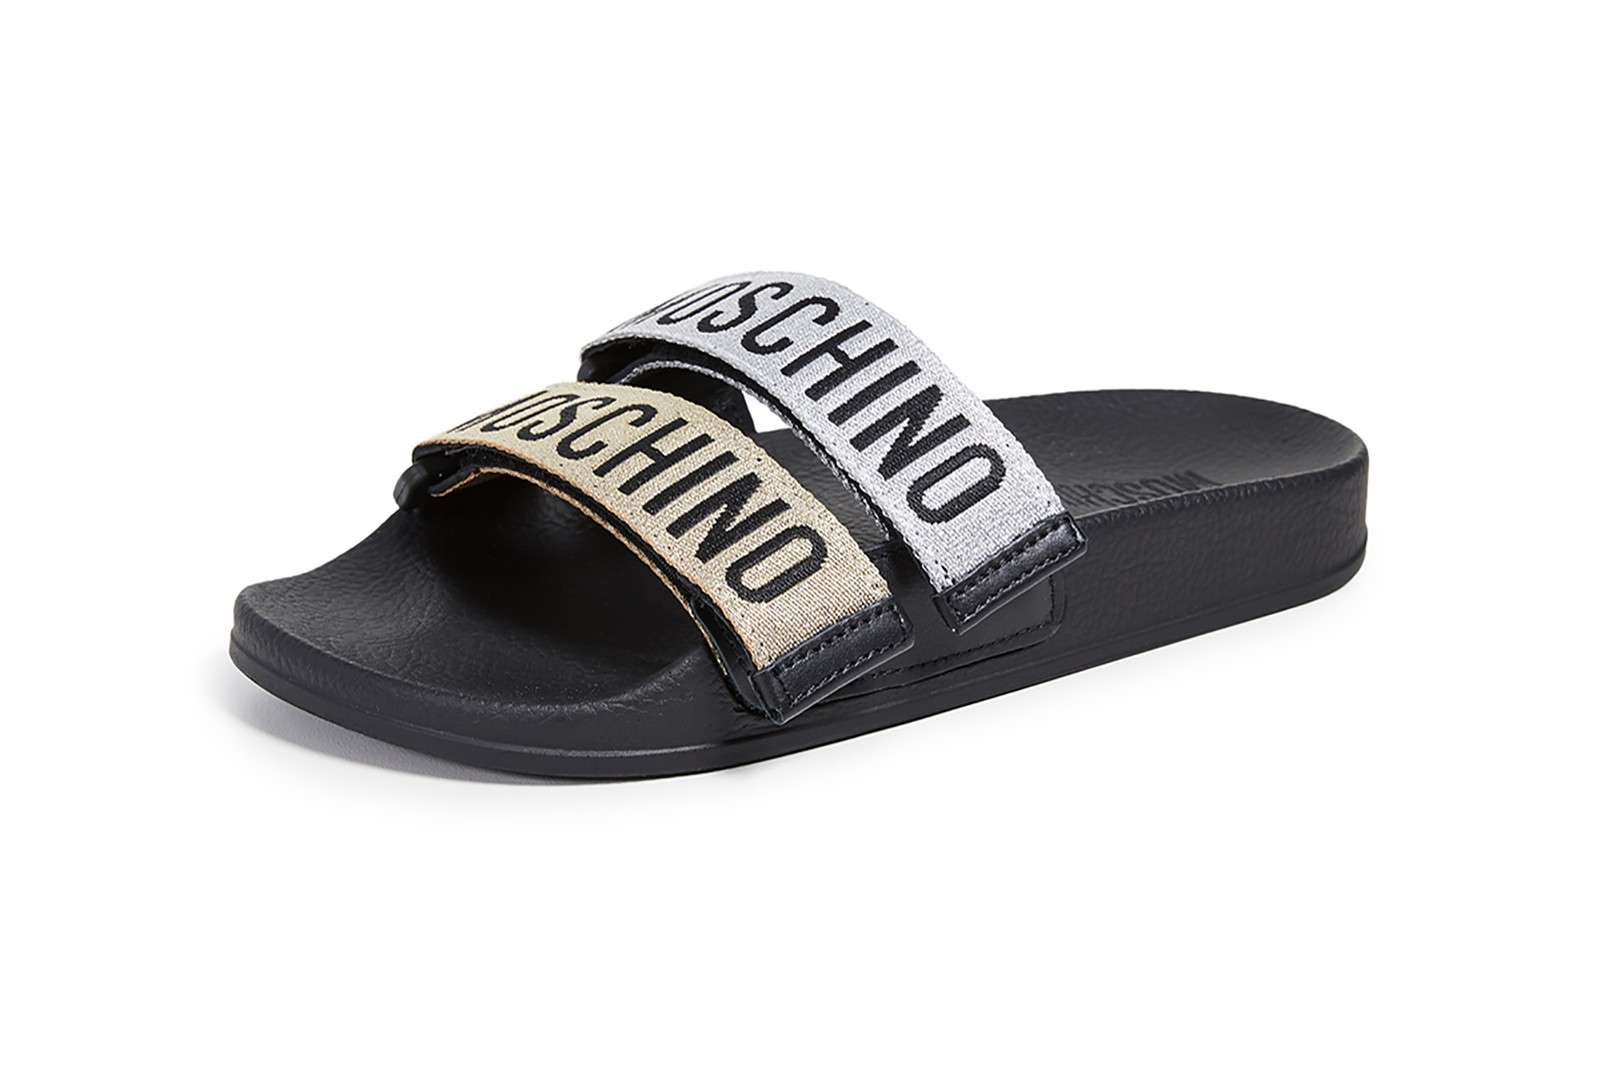 affordable designer sandals velcro prada moschino aries suicoke teva shoes fashion footwear VELCRO®